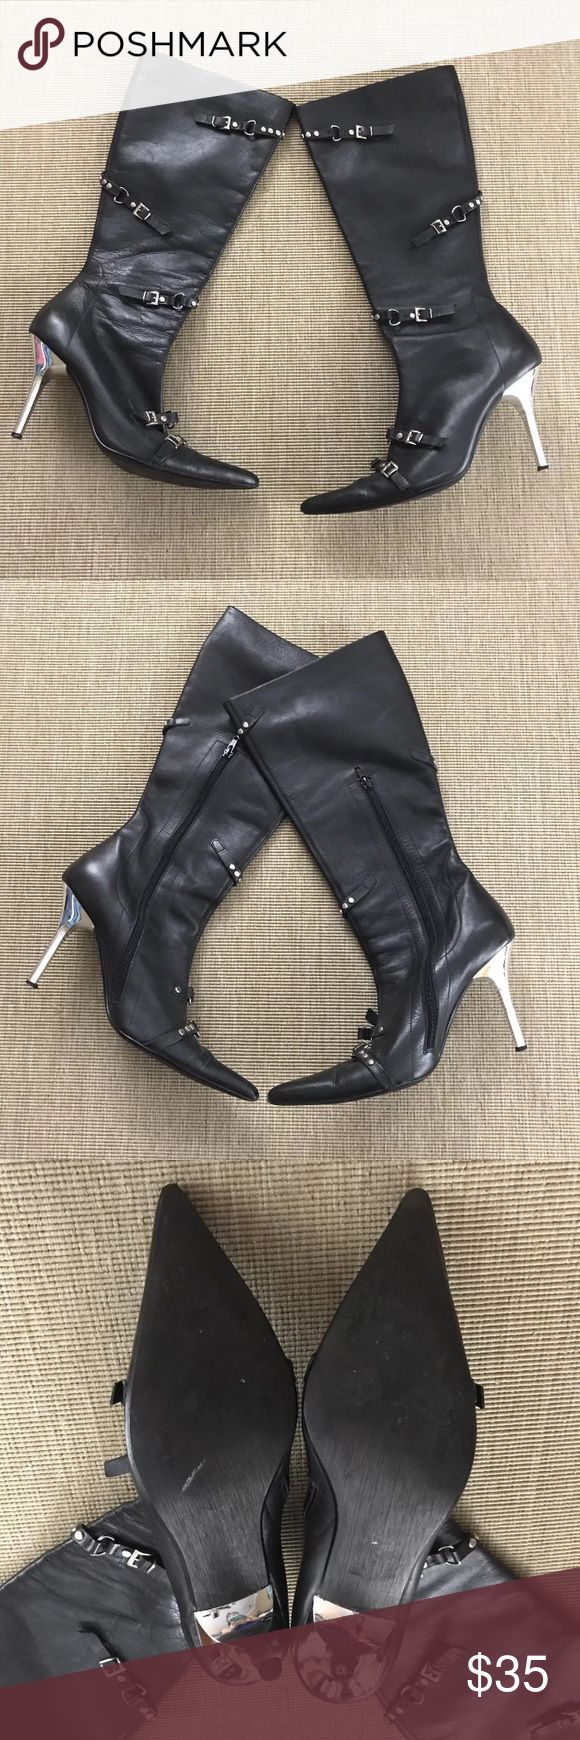 Steve Madden 10 M Black Boots Stiletto Buckles Steve Madden 10 M Black Boots Stiletto Buckles Silver Heels. Fantastic condition - worn once. Slight wear on toes (see photos). Steve Madden Shoes Heeled Boots